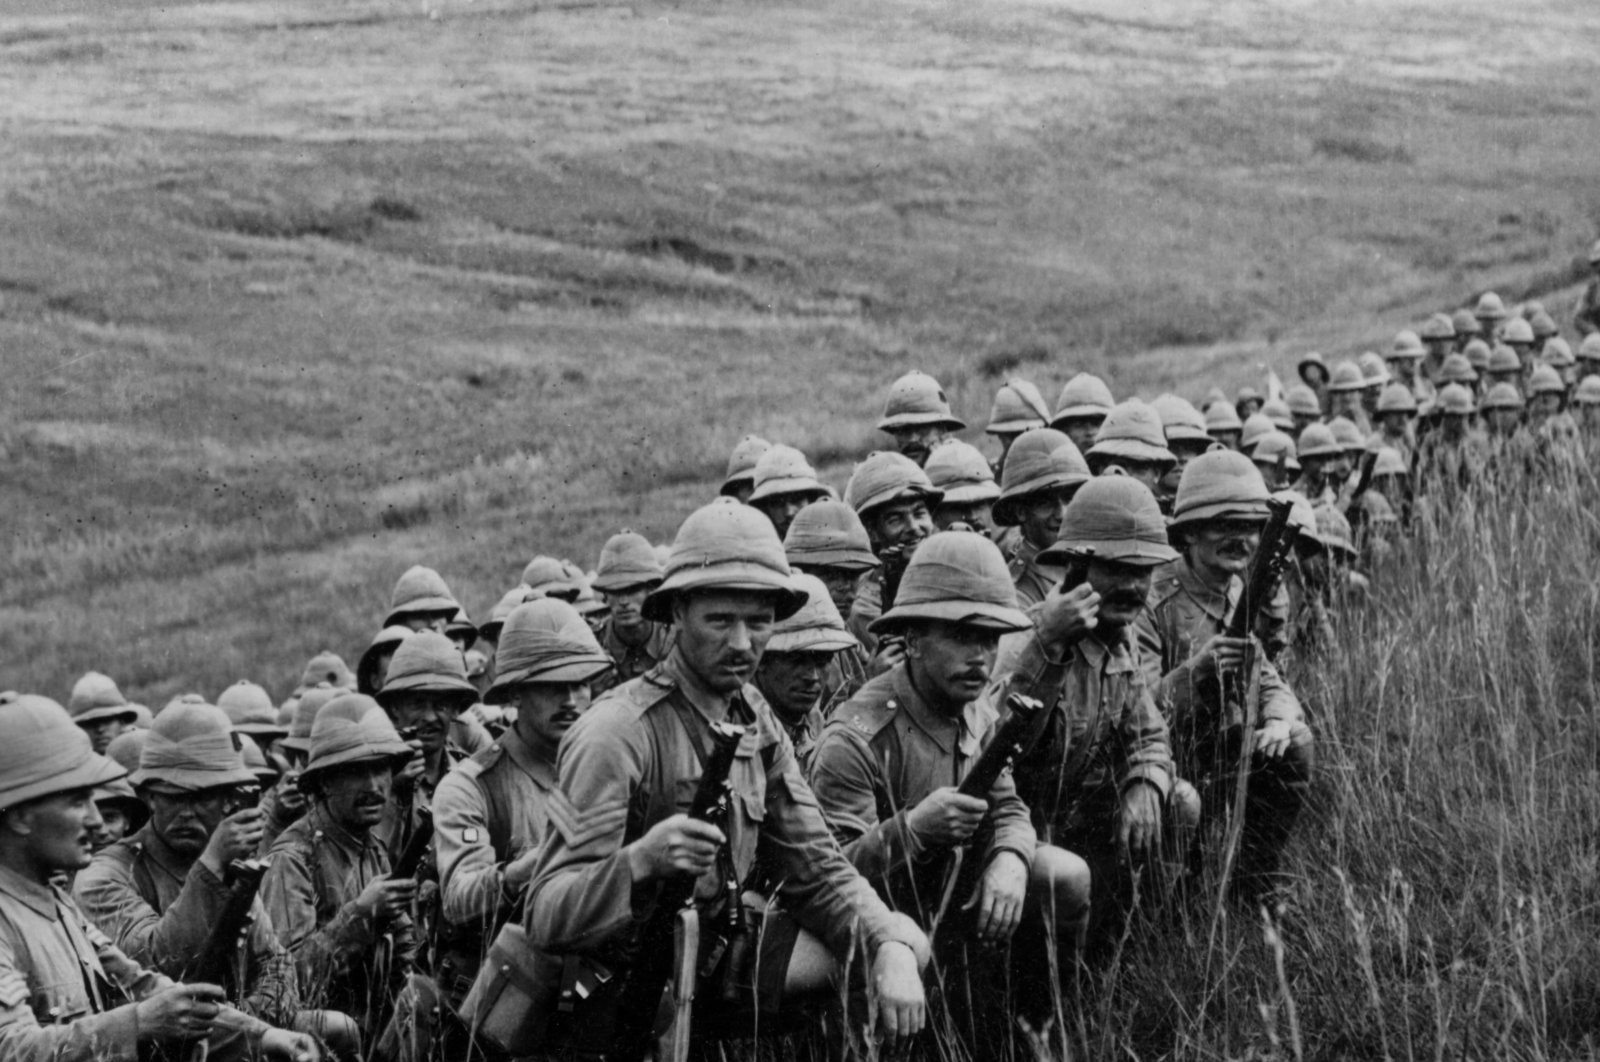 The reserves of the Allied forces wait for orders to move up to their new positions on the slopes of Cape Helles during the Gallipoli Campaign 1915-1916.